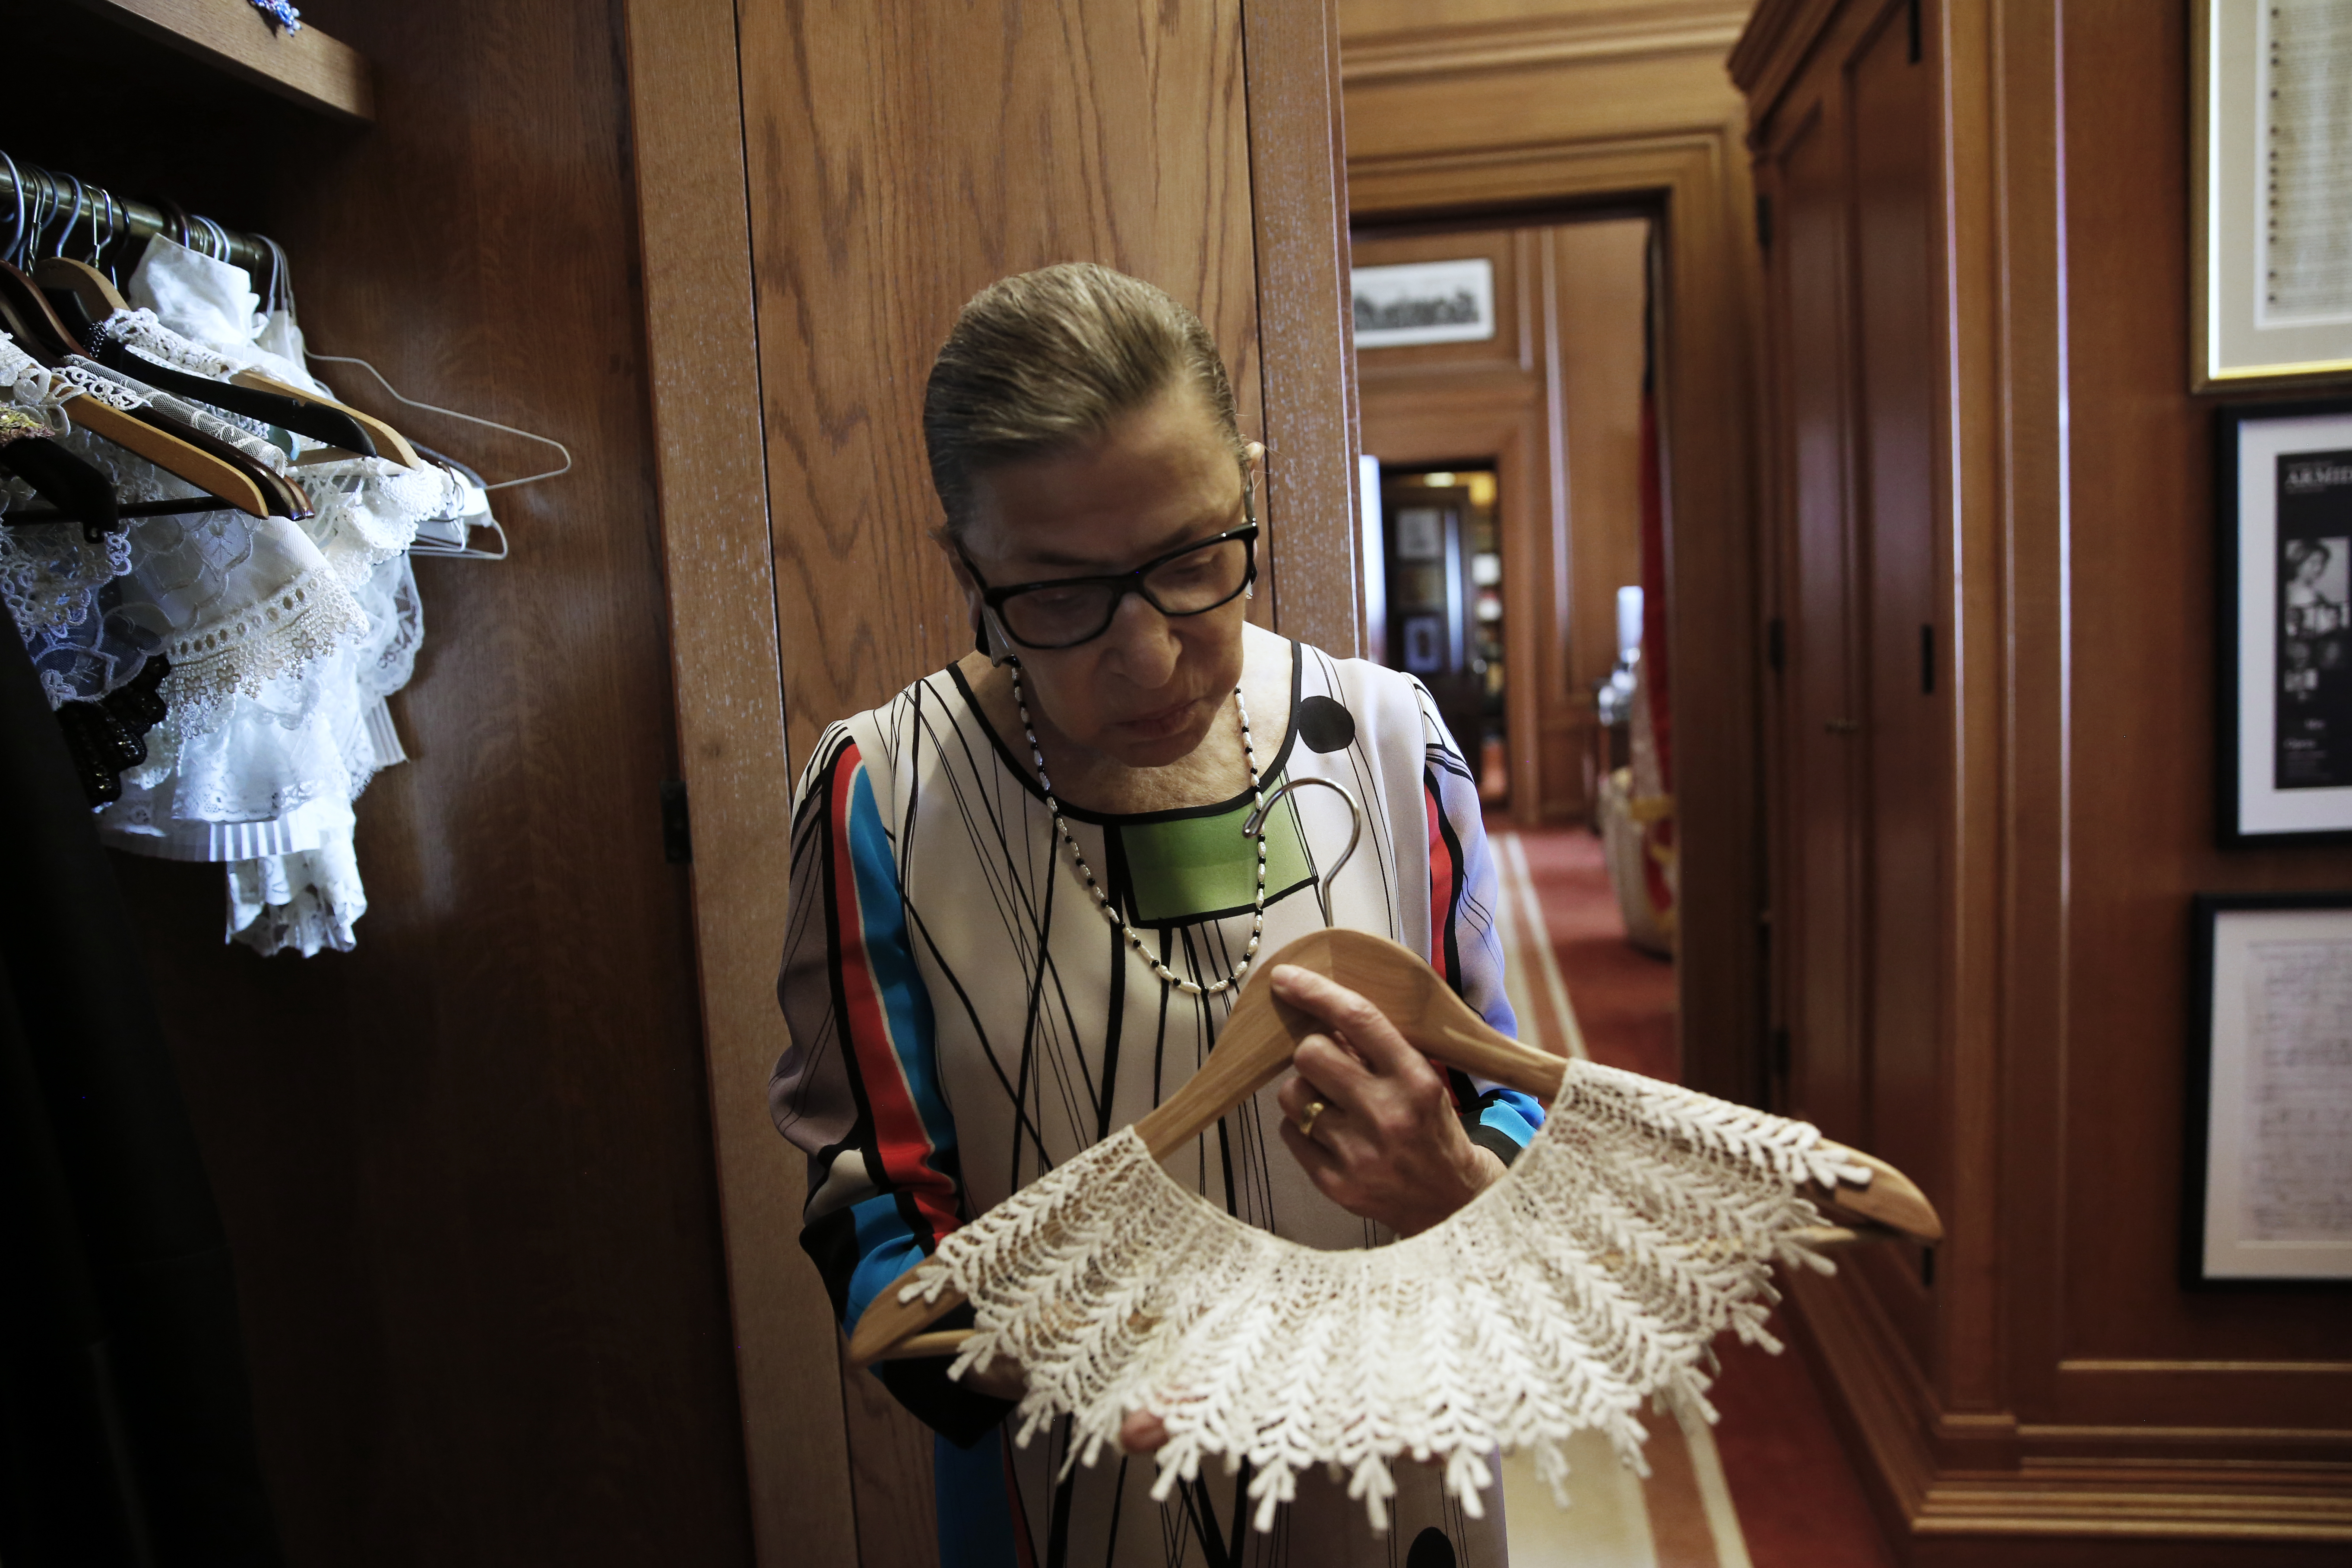 U.S. Supreme Court Justice Ruth Bader Ginsburg shows the many different collars (jabots) she wears with her robes, in her chambers at the Supreme Court building in Washington, U.S. June 17, 2016. REUTERS/Jonathan Ernst